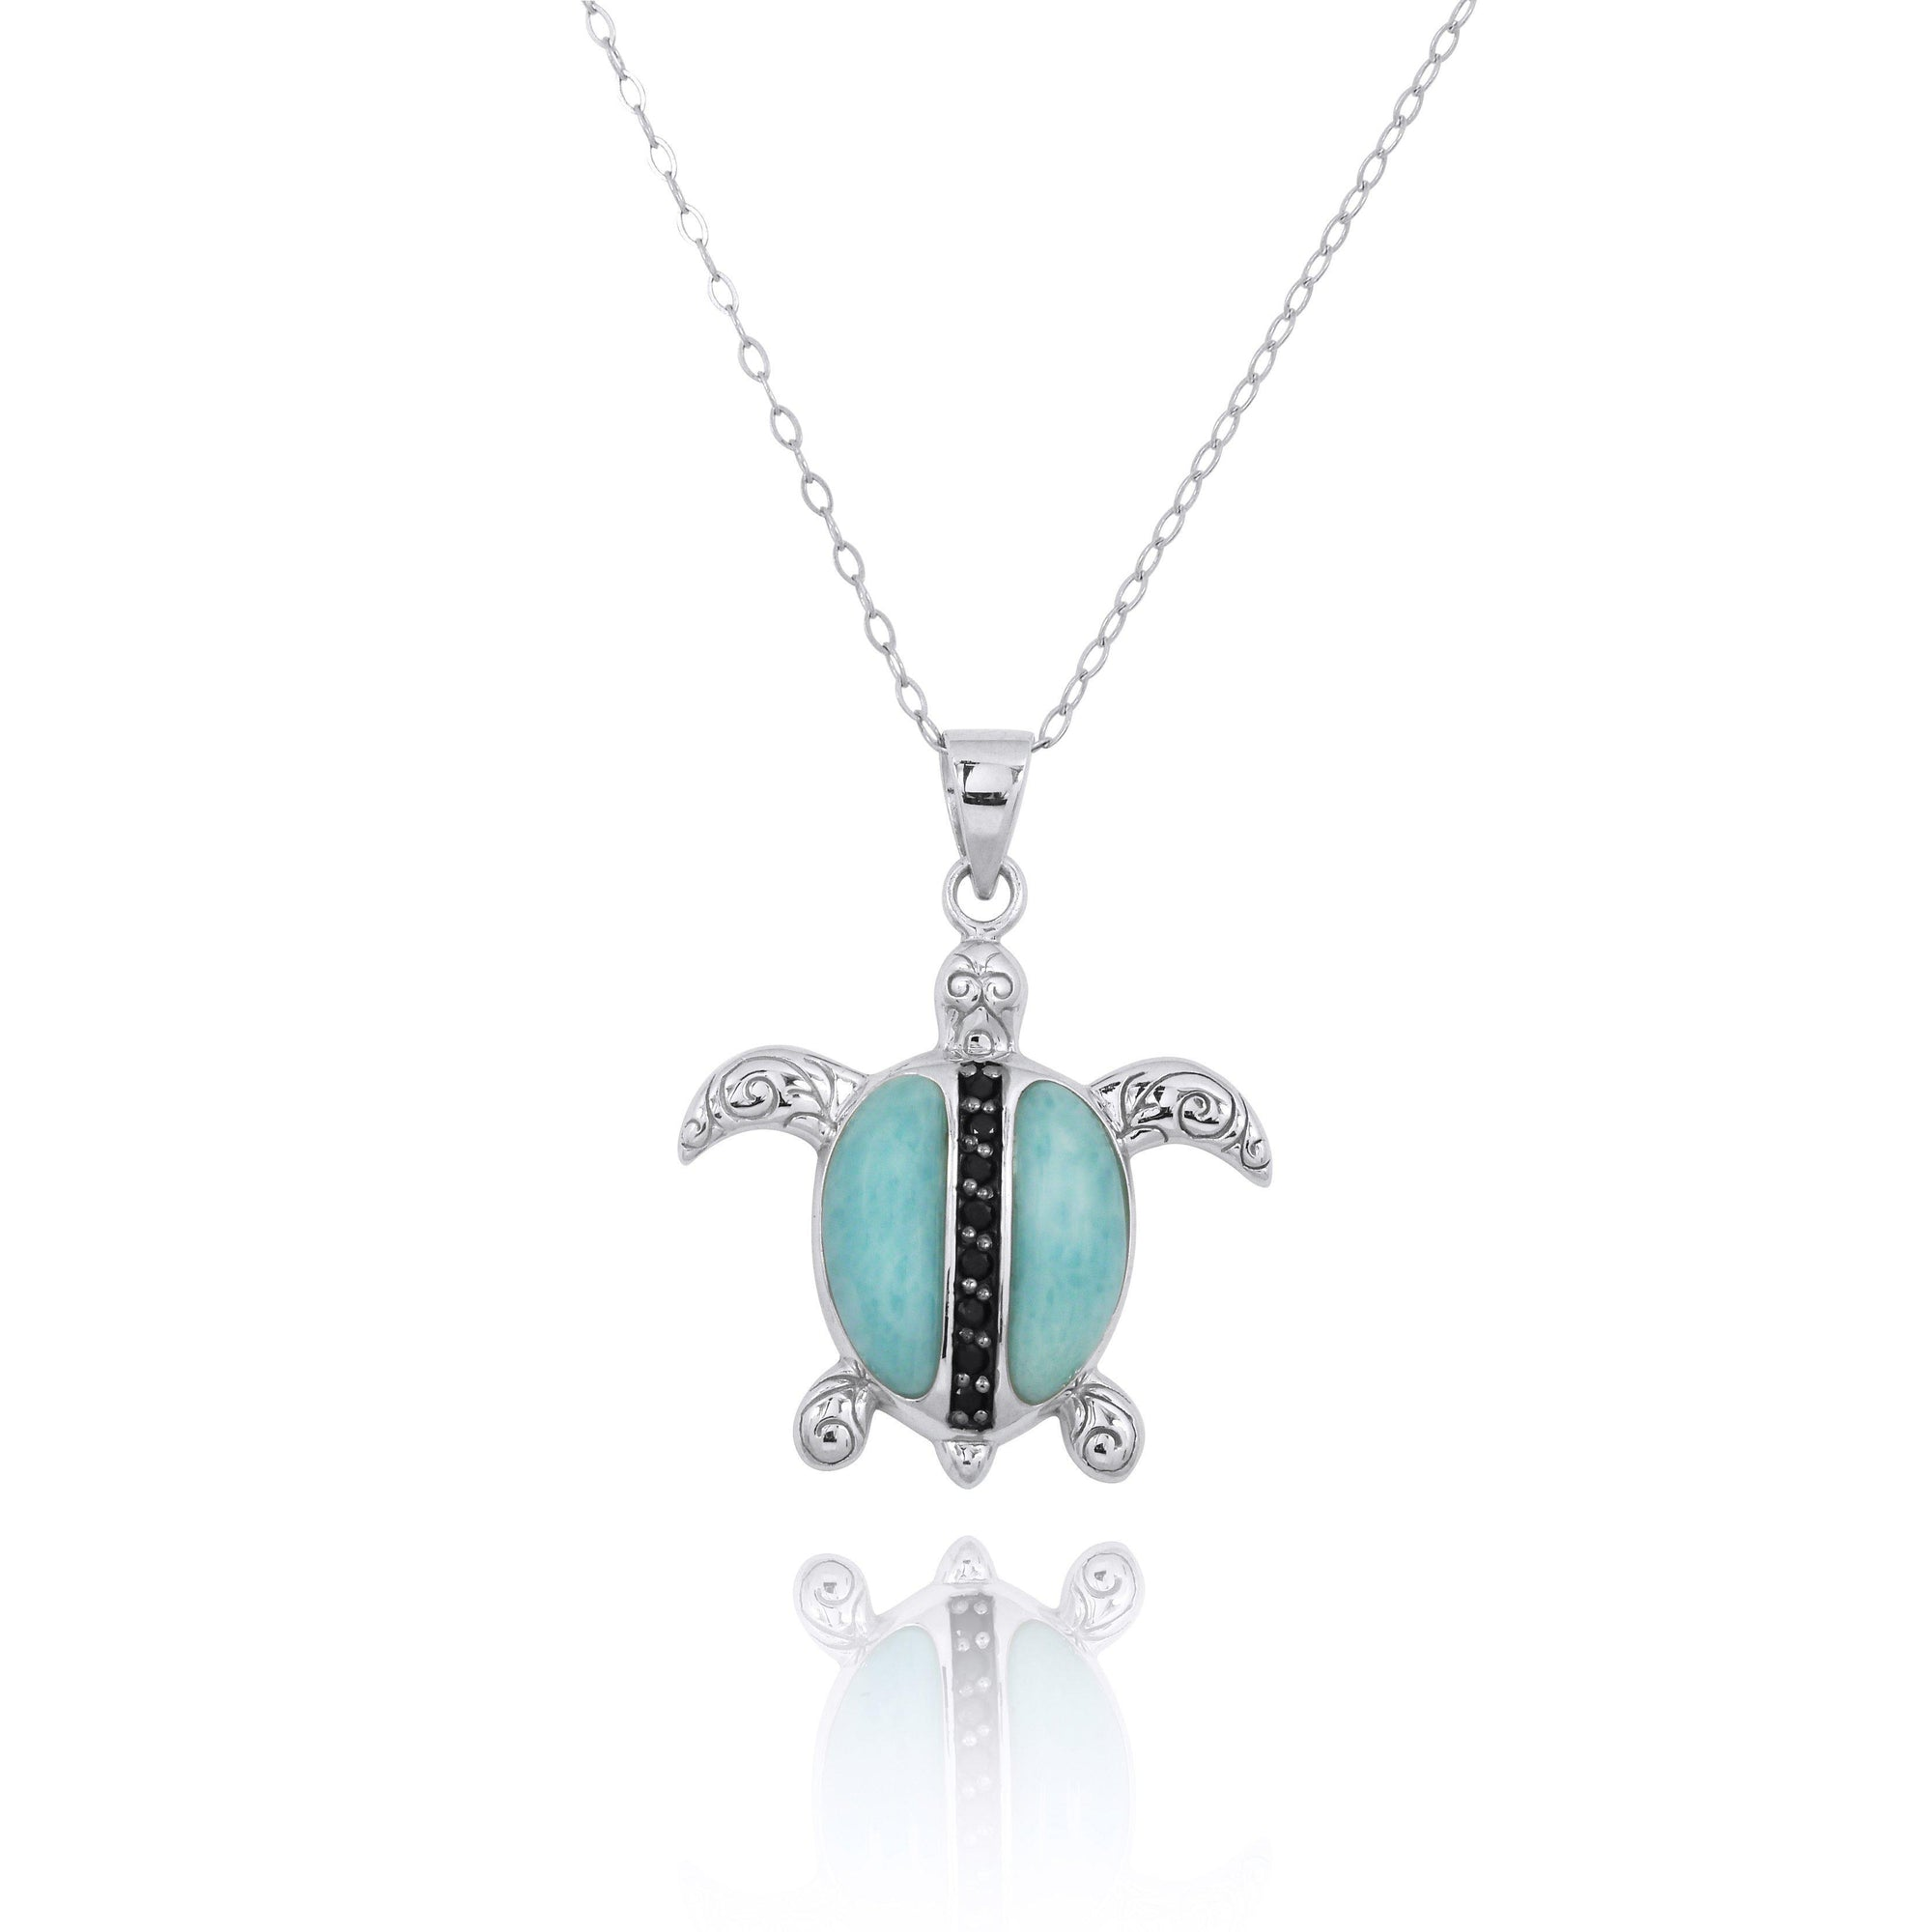 Sterling Silver Turtle Pendant Necklace with Larimar and Black Spinel